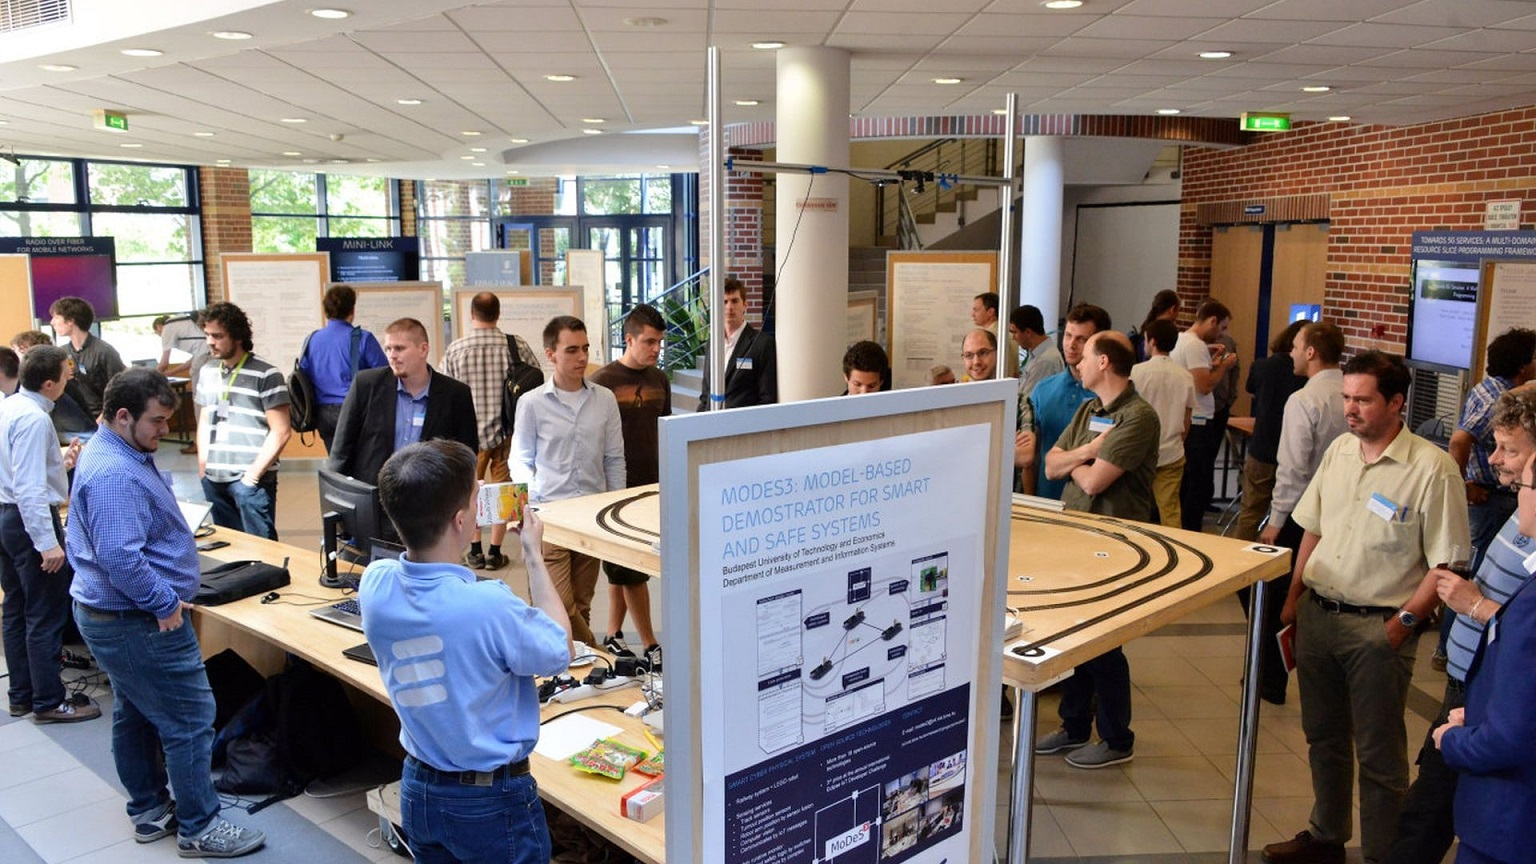 MoDeS3 project presented at Ericsson University Day